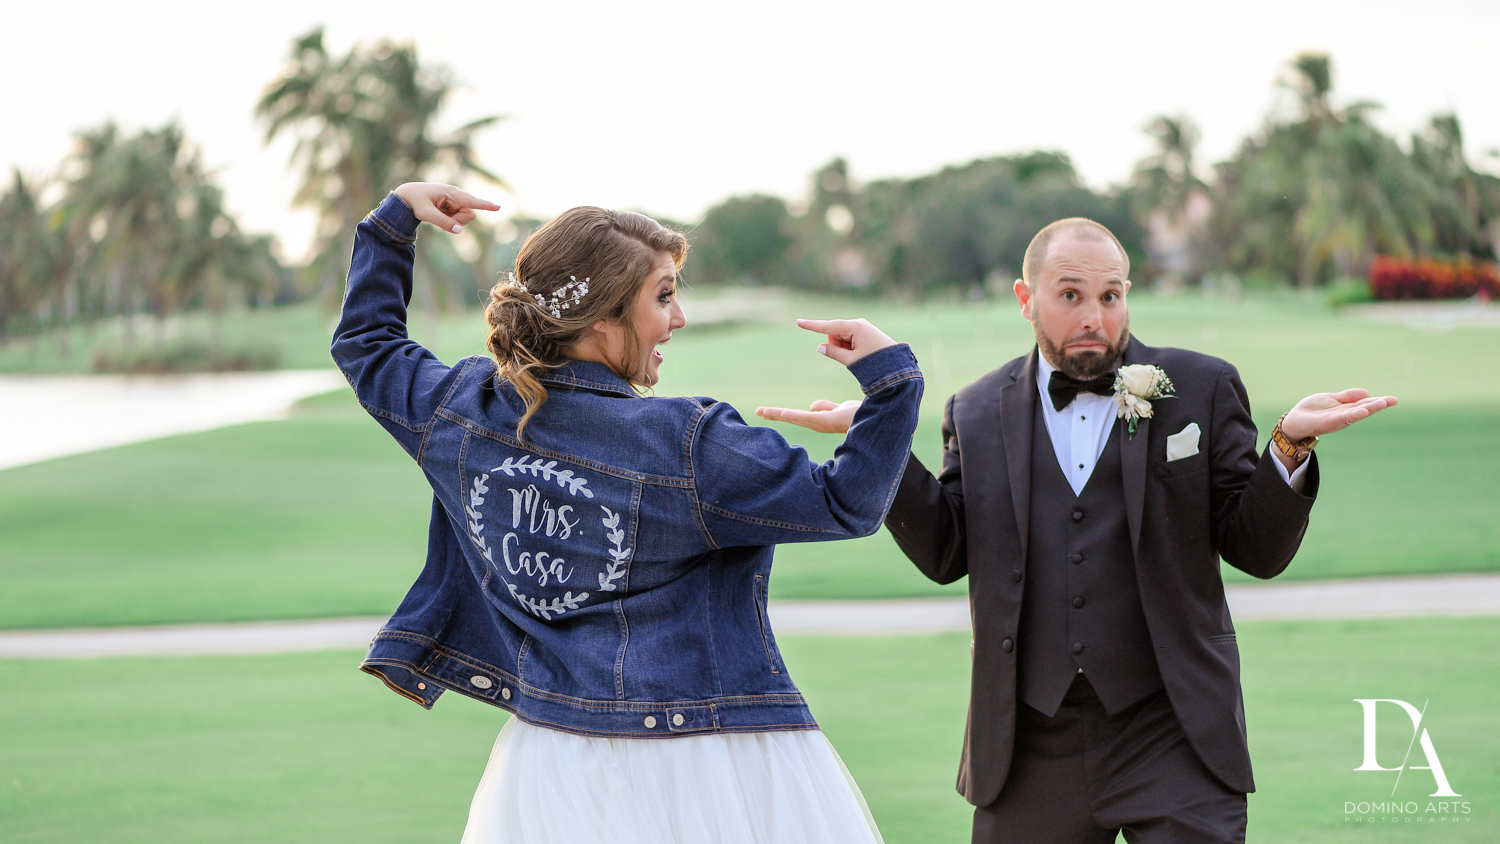 Fun candid bride and groom at country club wedding Woodfield Boca South Florida by Domino Arts